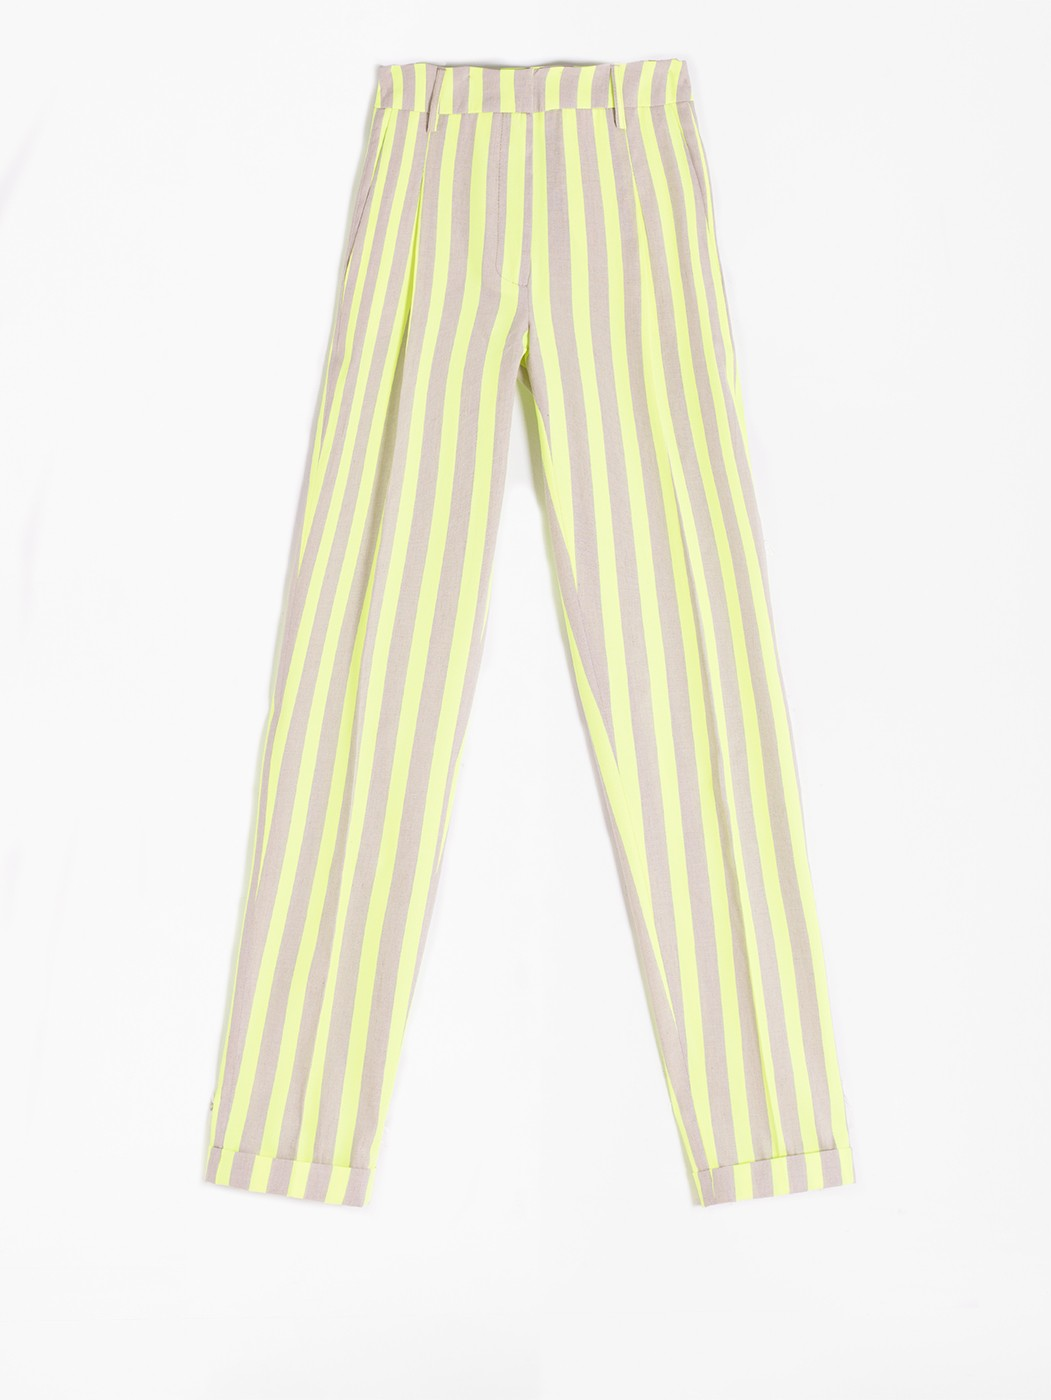 PANTALÓN OLIVIA LIME FLUOR STRIPES